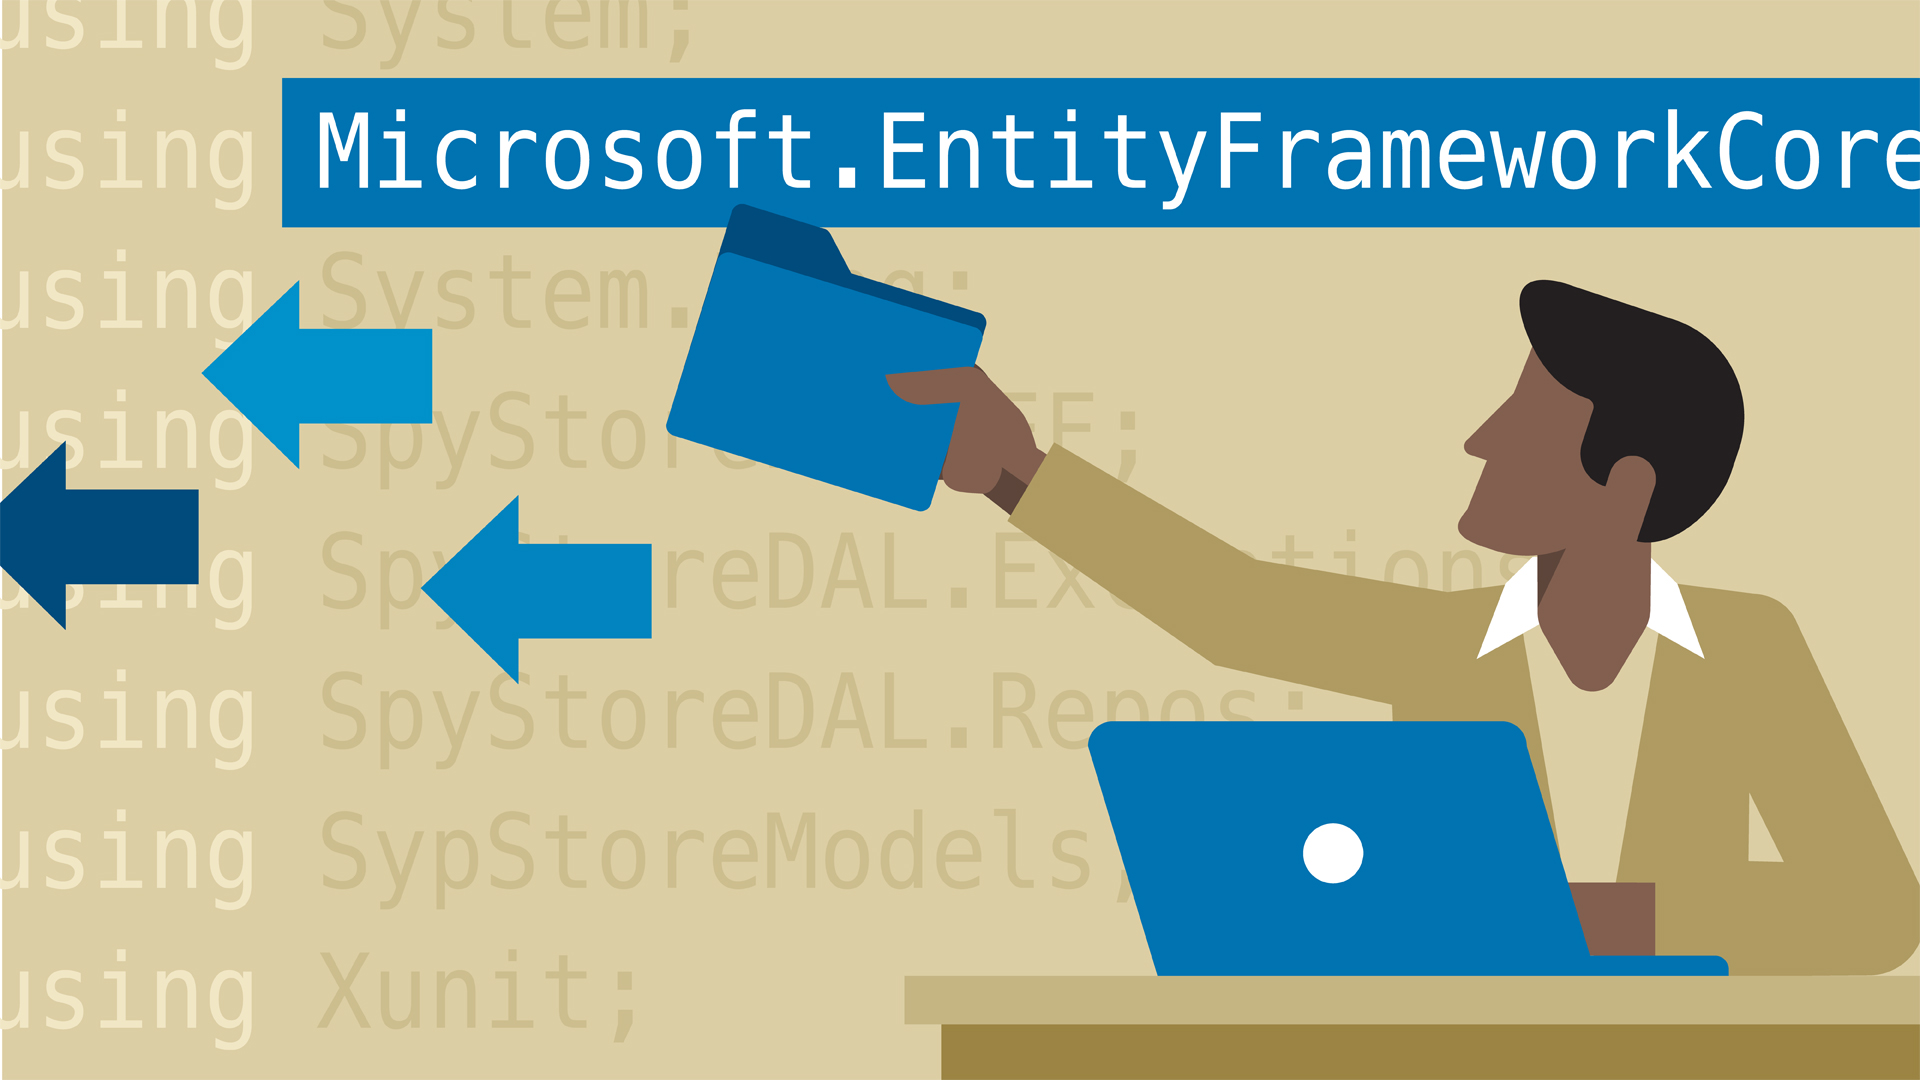 Add Entity Framework to projects